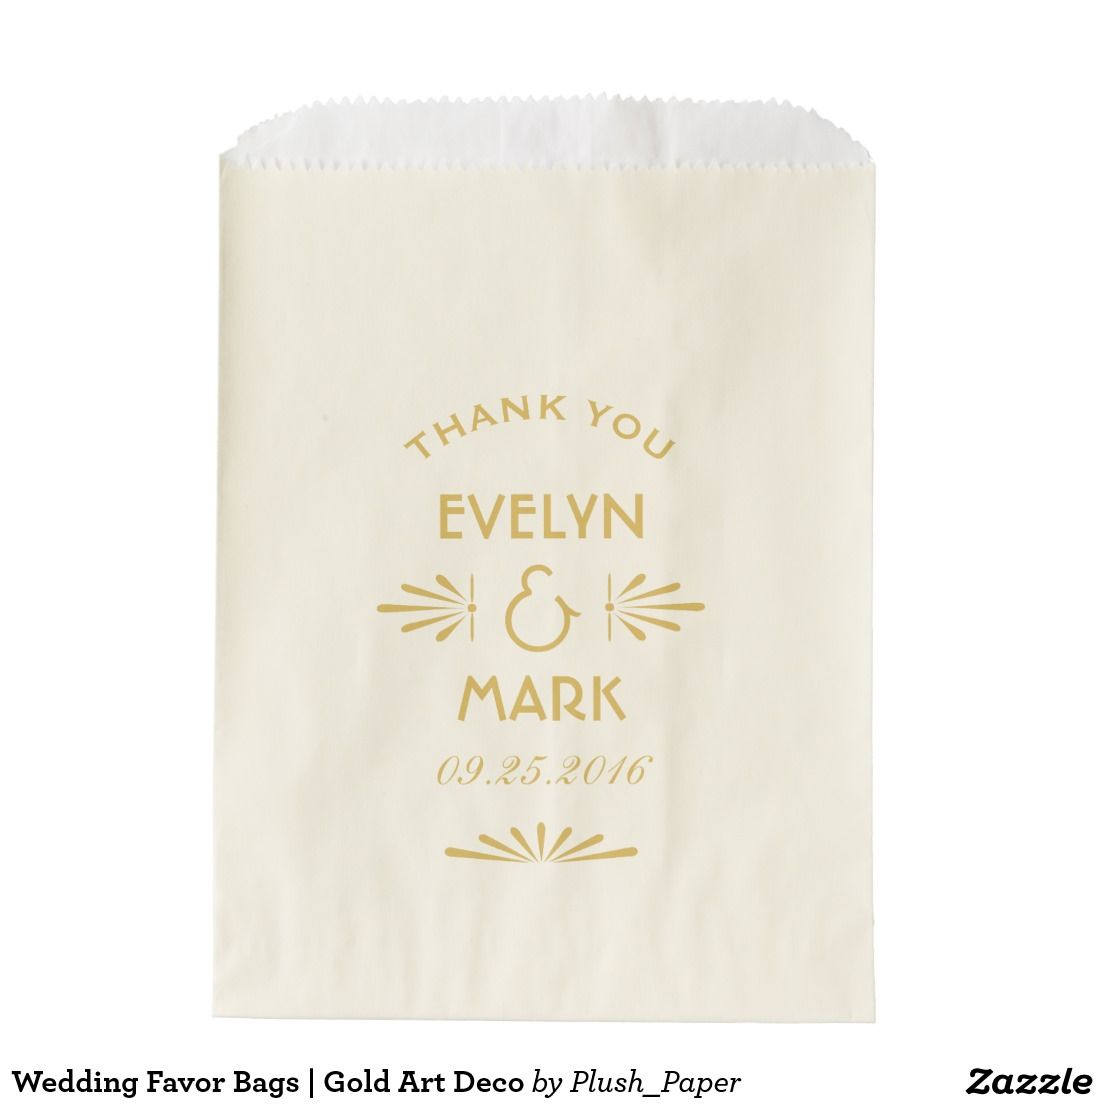 Wedding Favor Bags | Gold Art Deco | Wedding Favor Bags | Pinterest ...